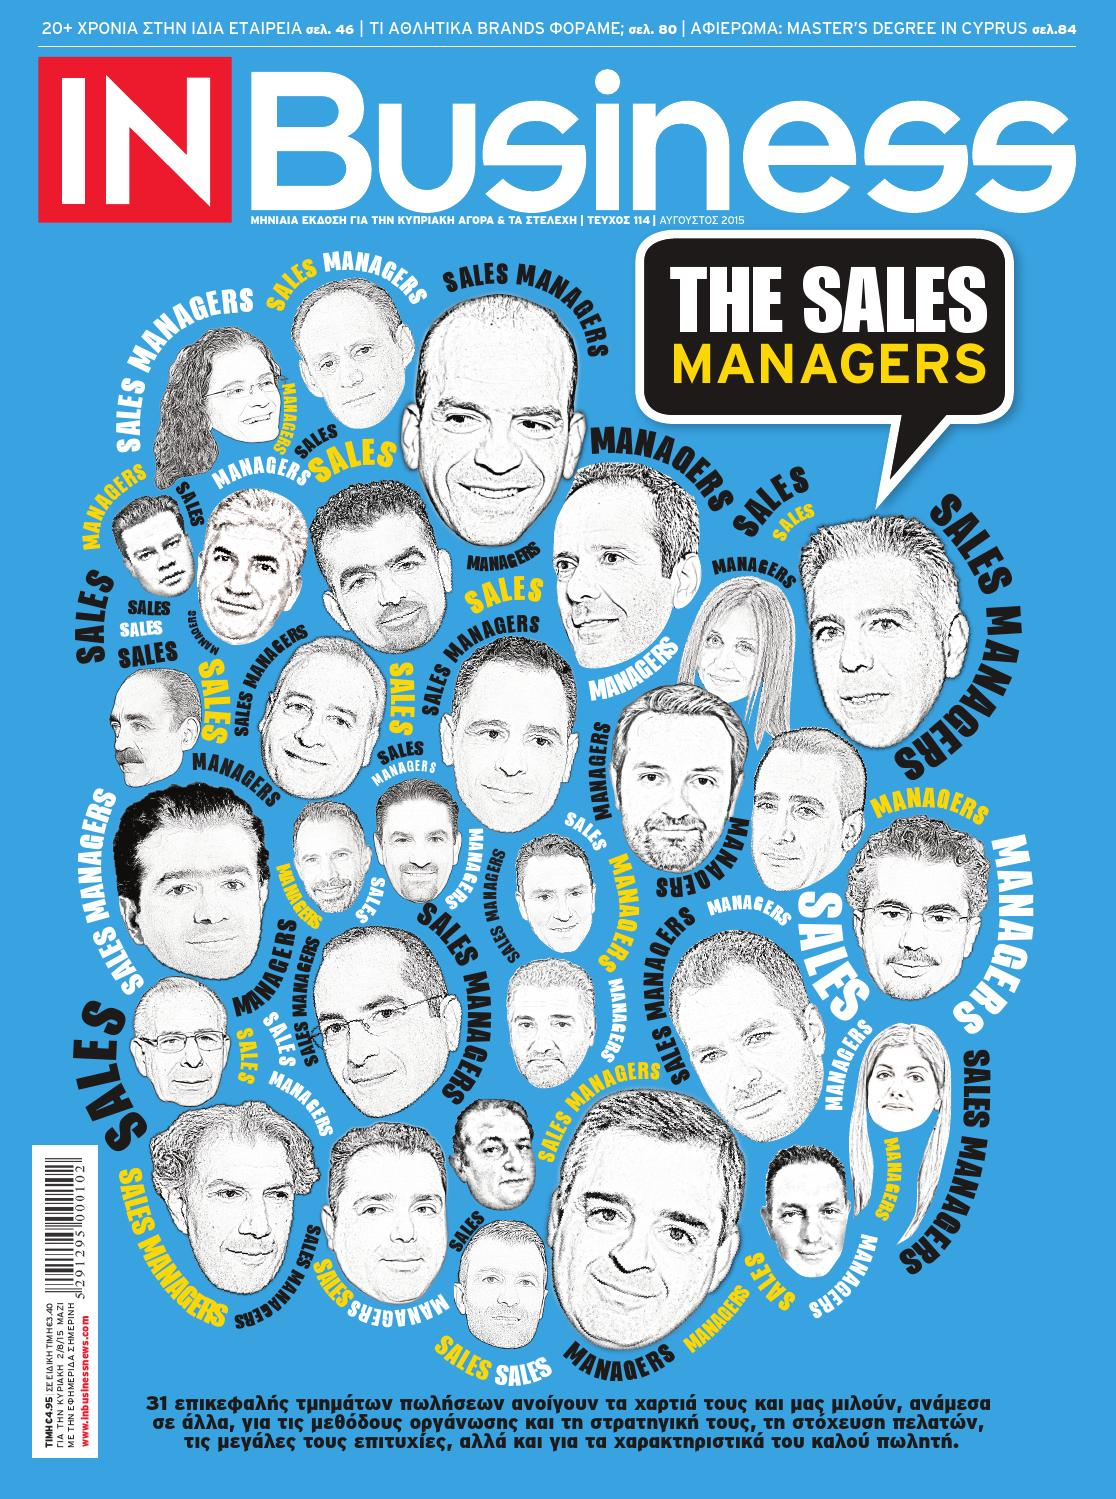 INBusiness August Issue 2015 by INBusiness - issuu a2eb632754b